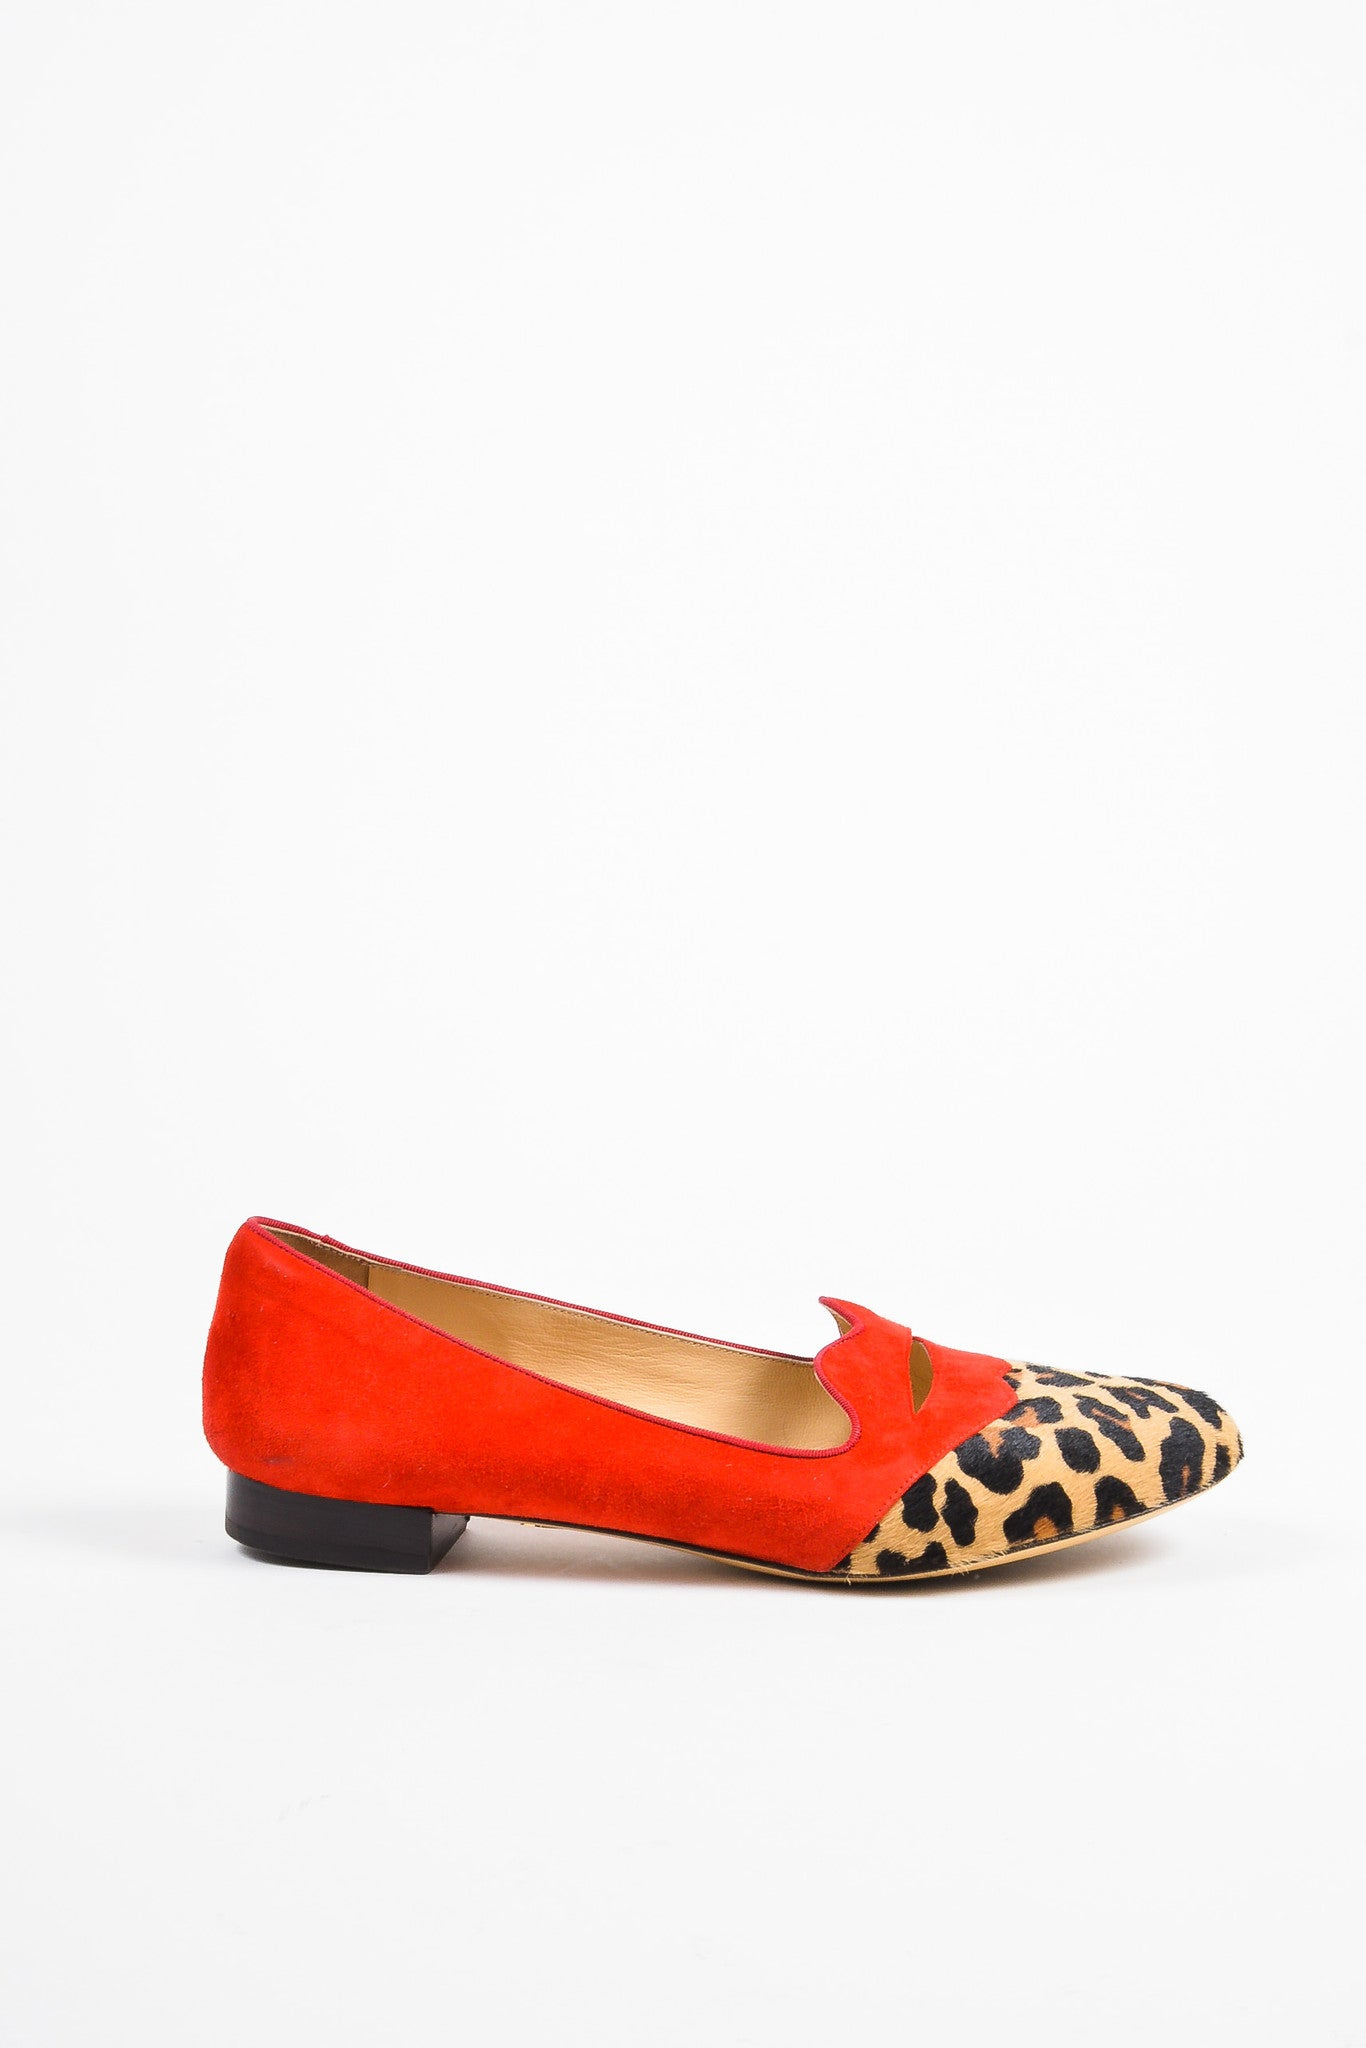 "Charlotte Olympia Red Suede Calf Hair Leopard Print ""Bisoux"" Flats Sideview"